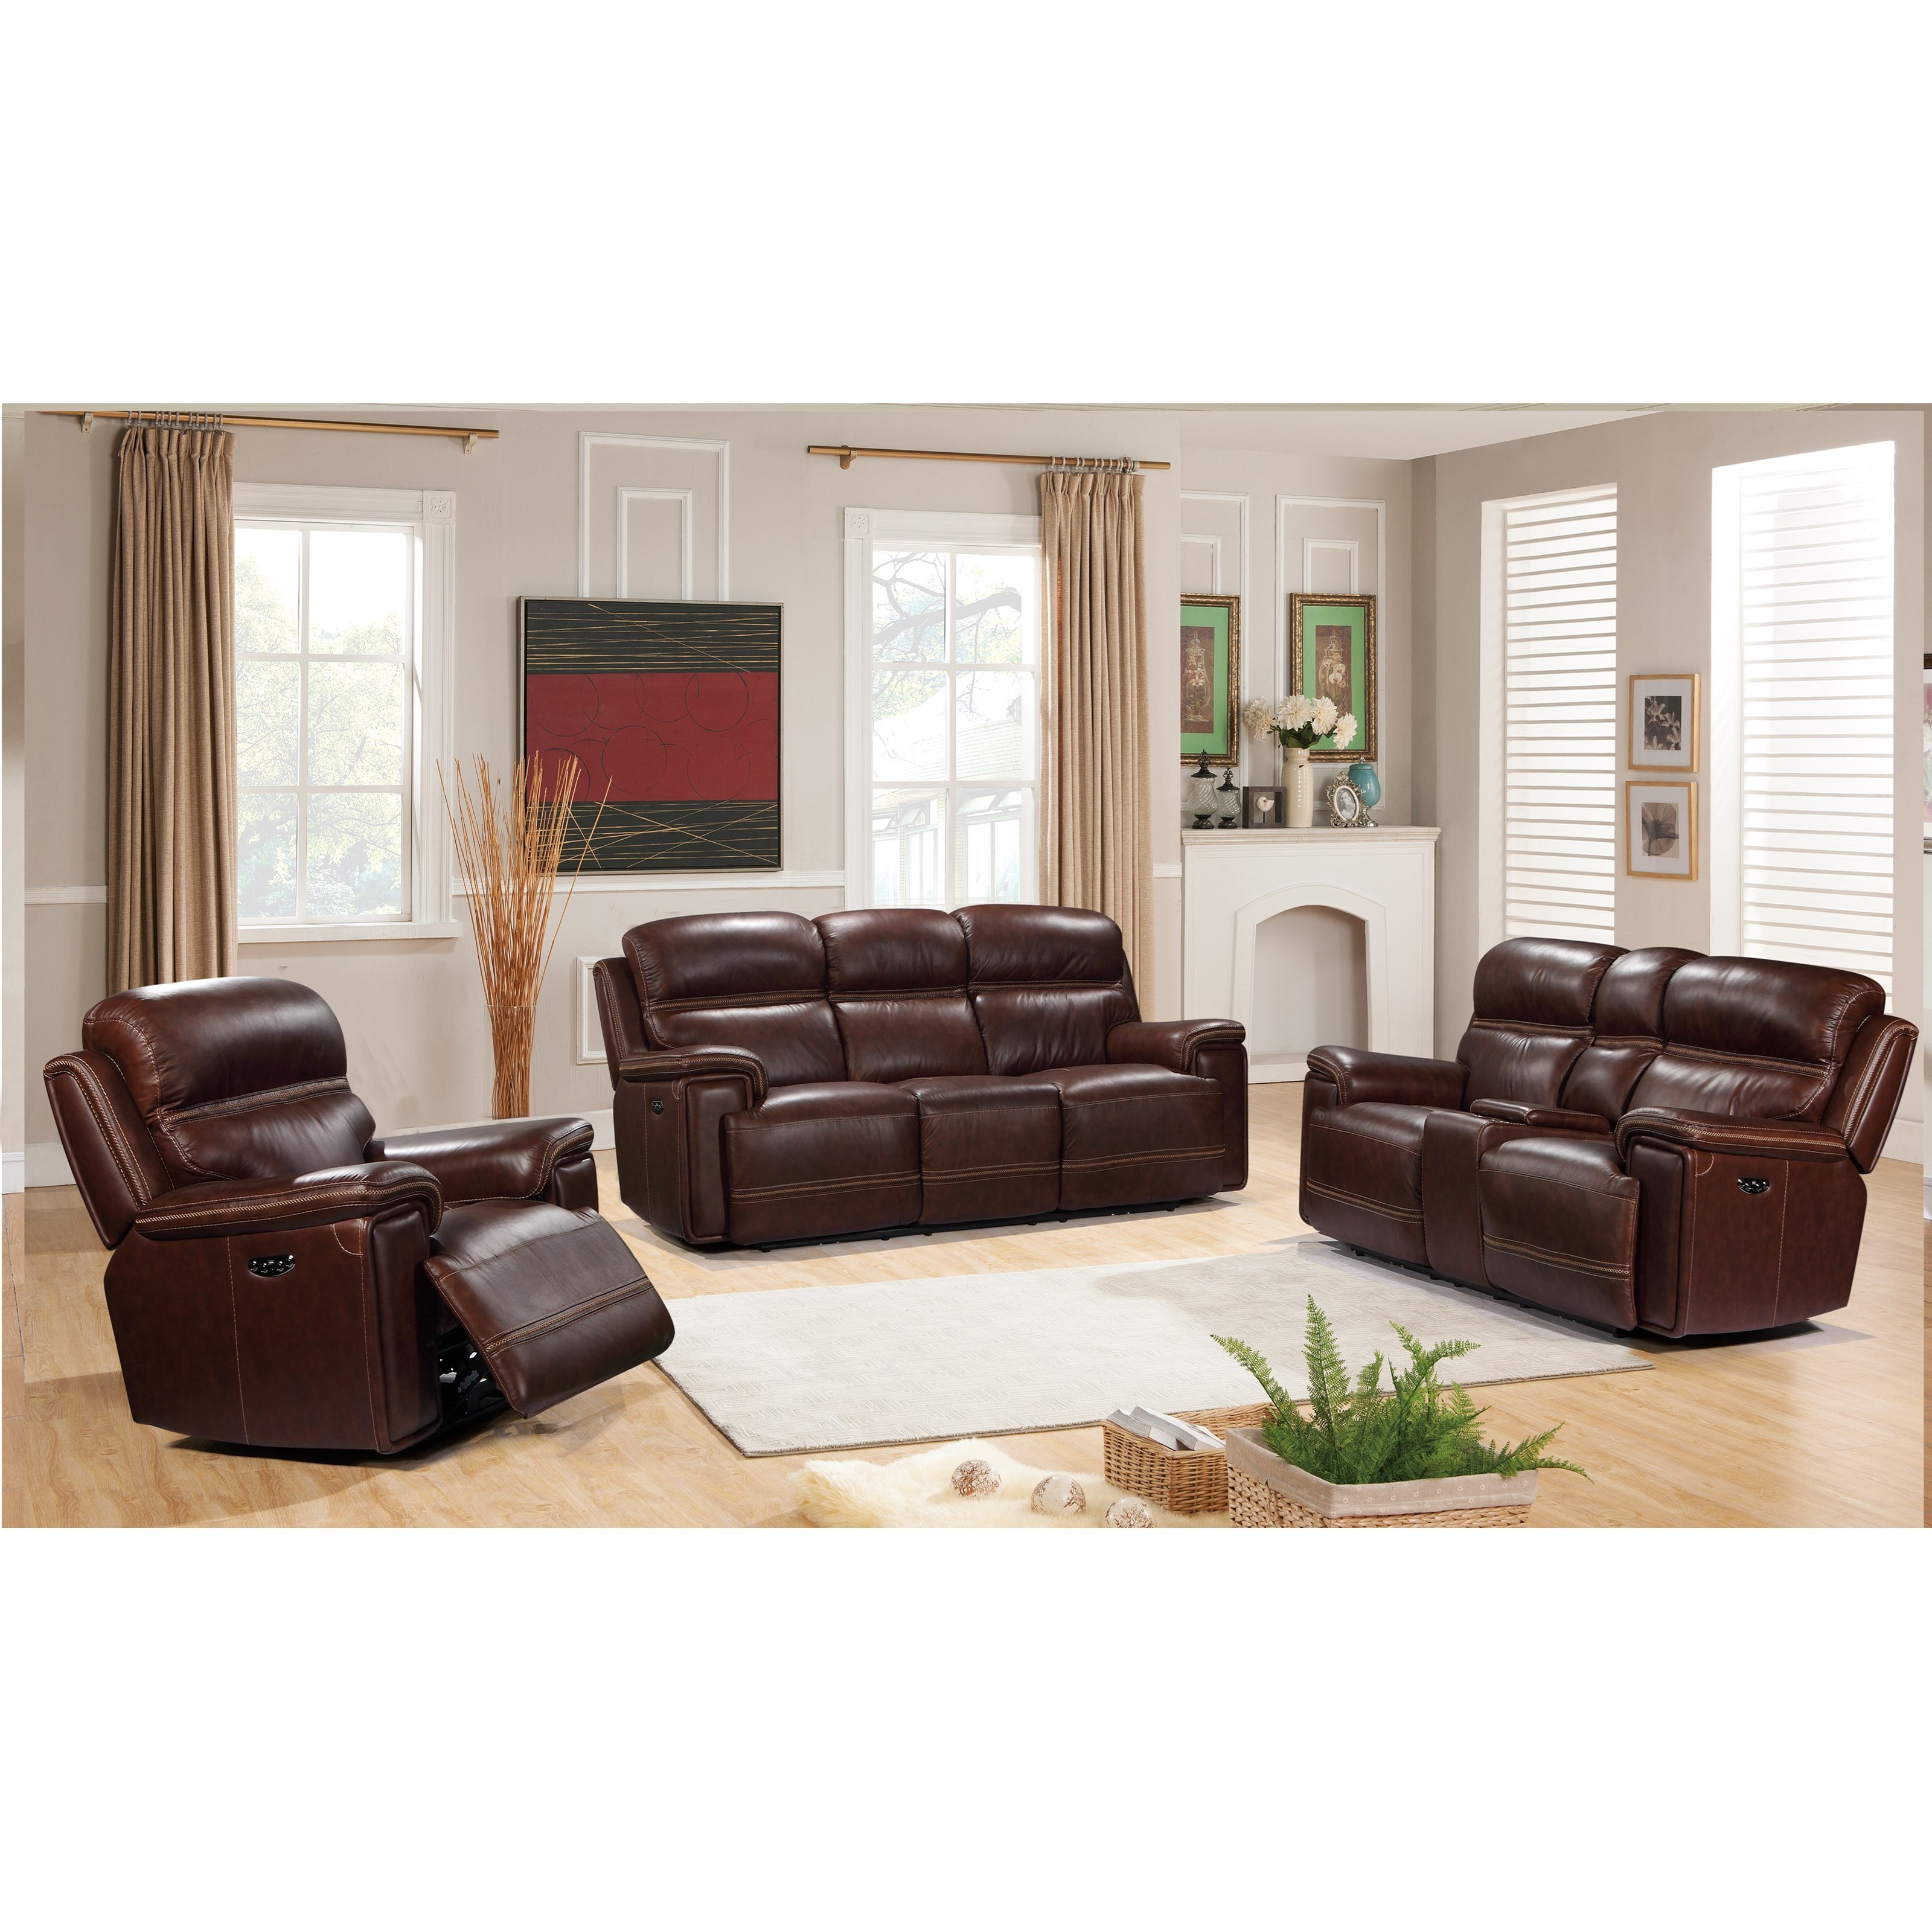 Fresno Power Reclining Living Room Group  by Leather Italia USA at Home Furnishings Direct